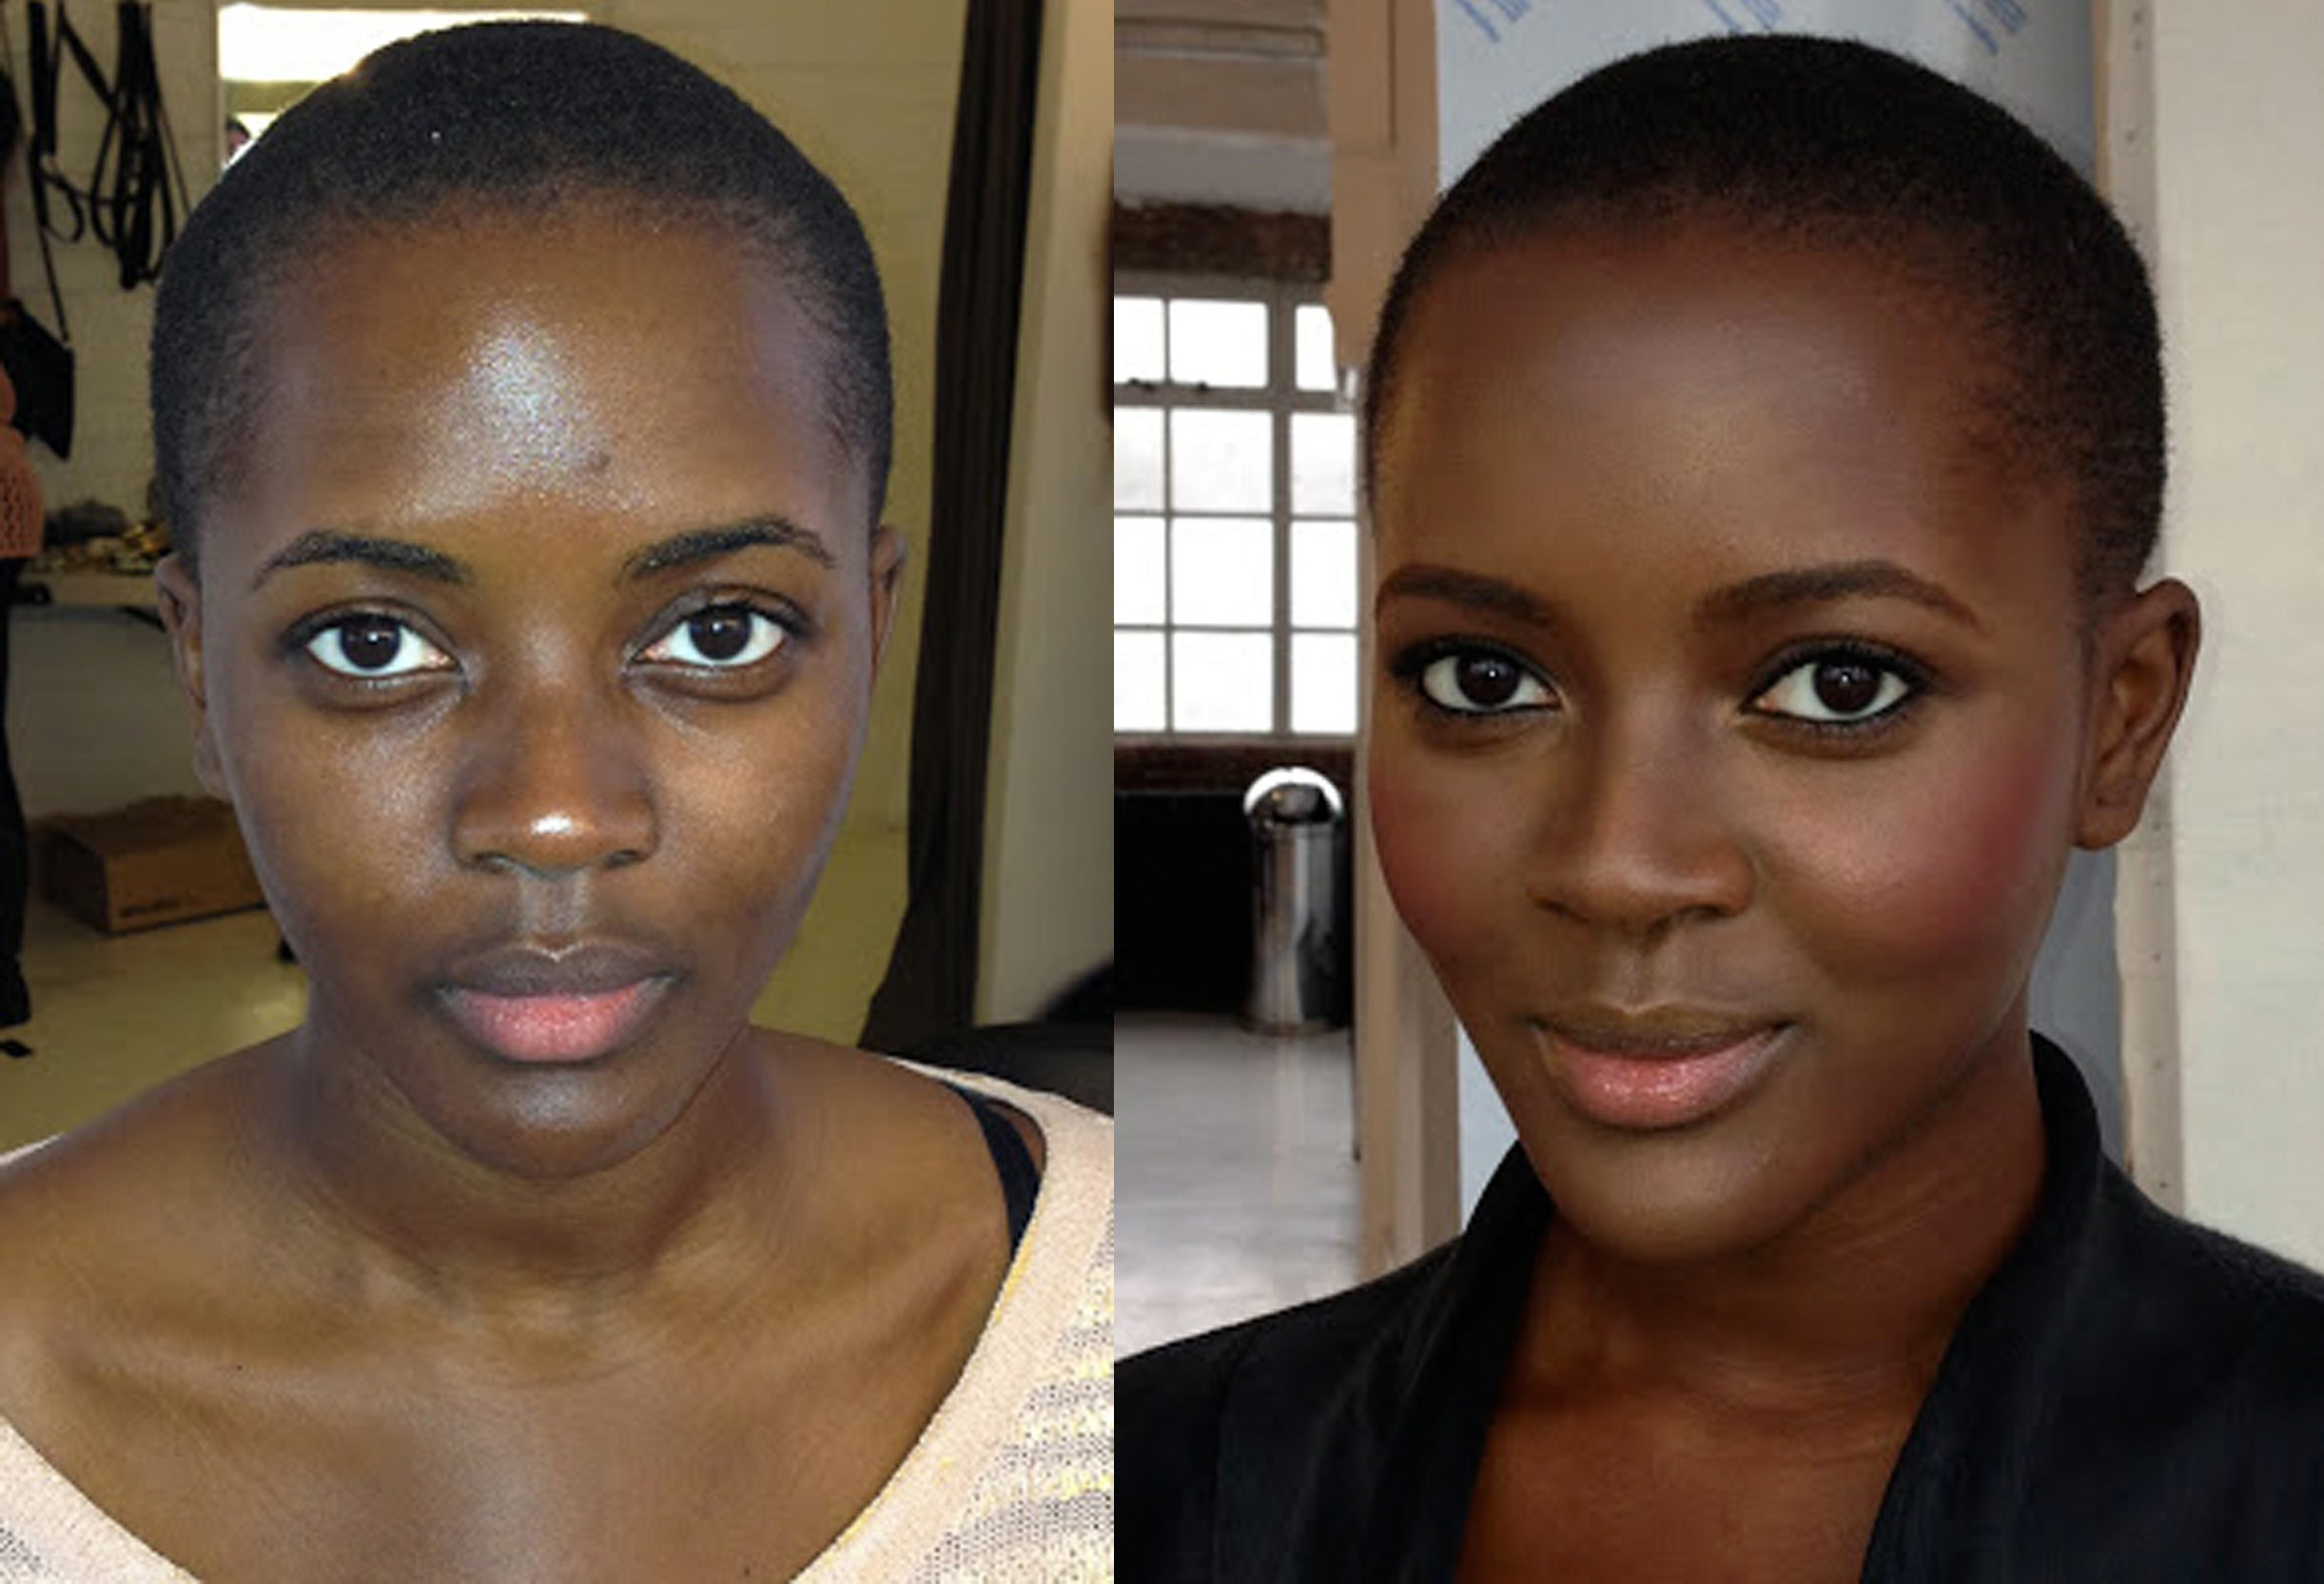 Contouring Makeup For Dark Skin - Mugeek Vidalondon